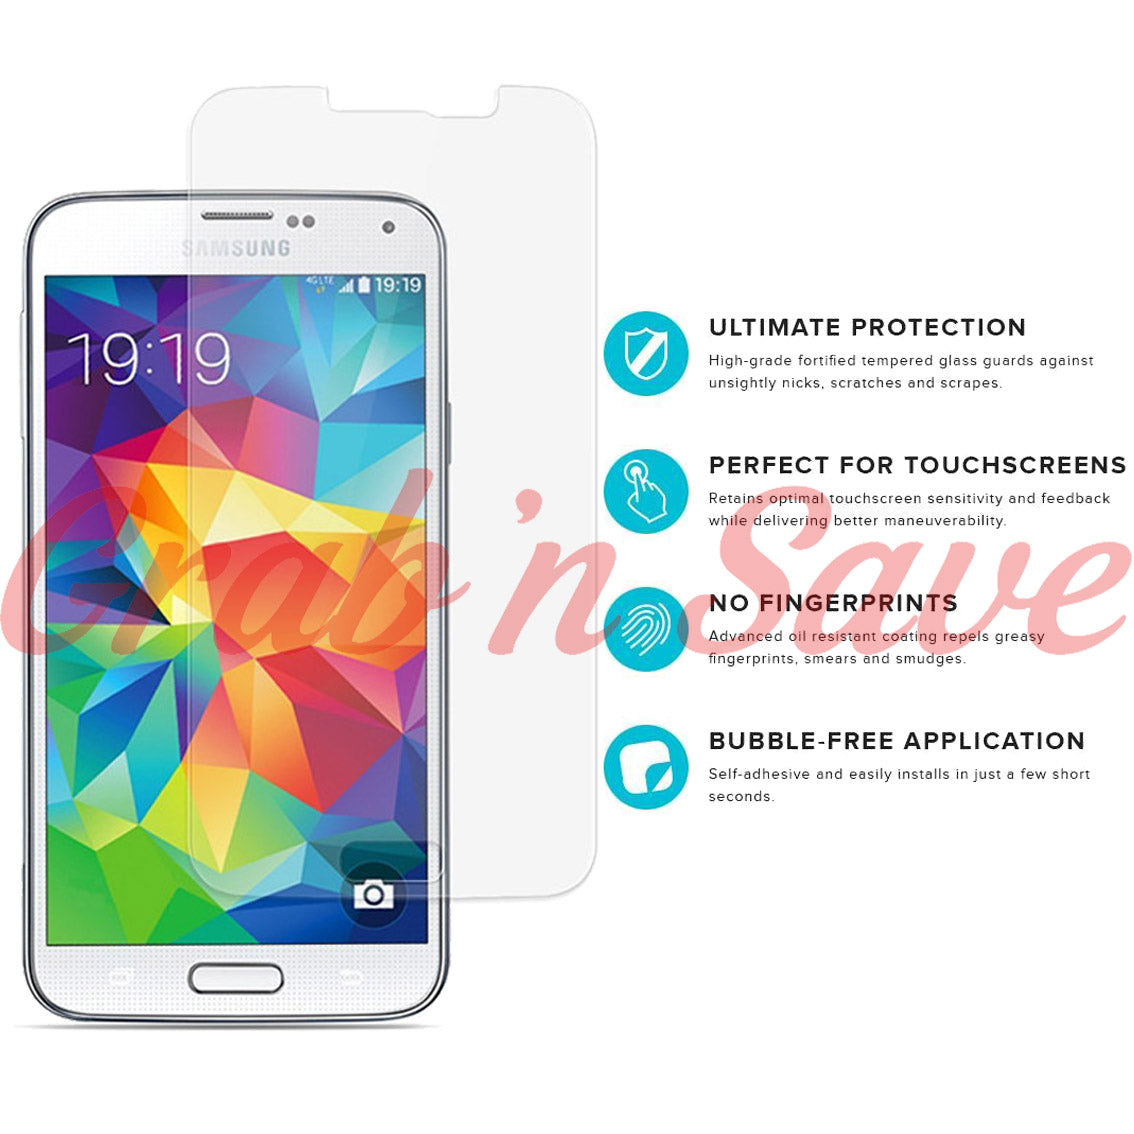 Samsung S5 Screen Protector, Glass Screen Protector, Tempered Glass Screen Protector